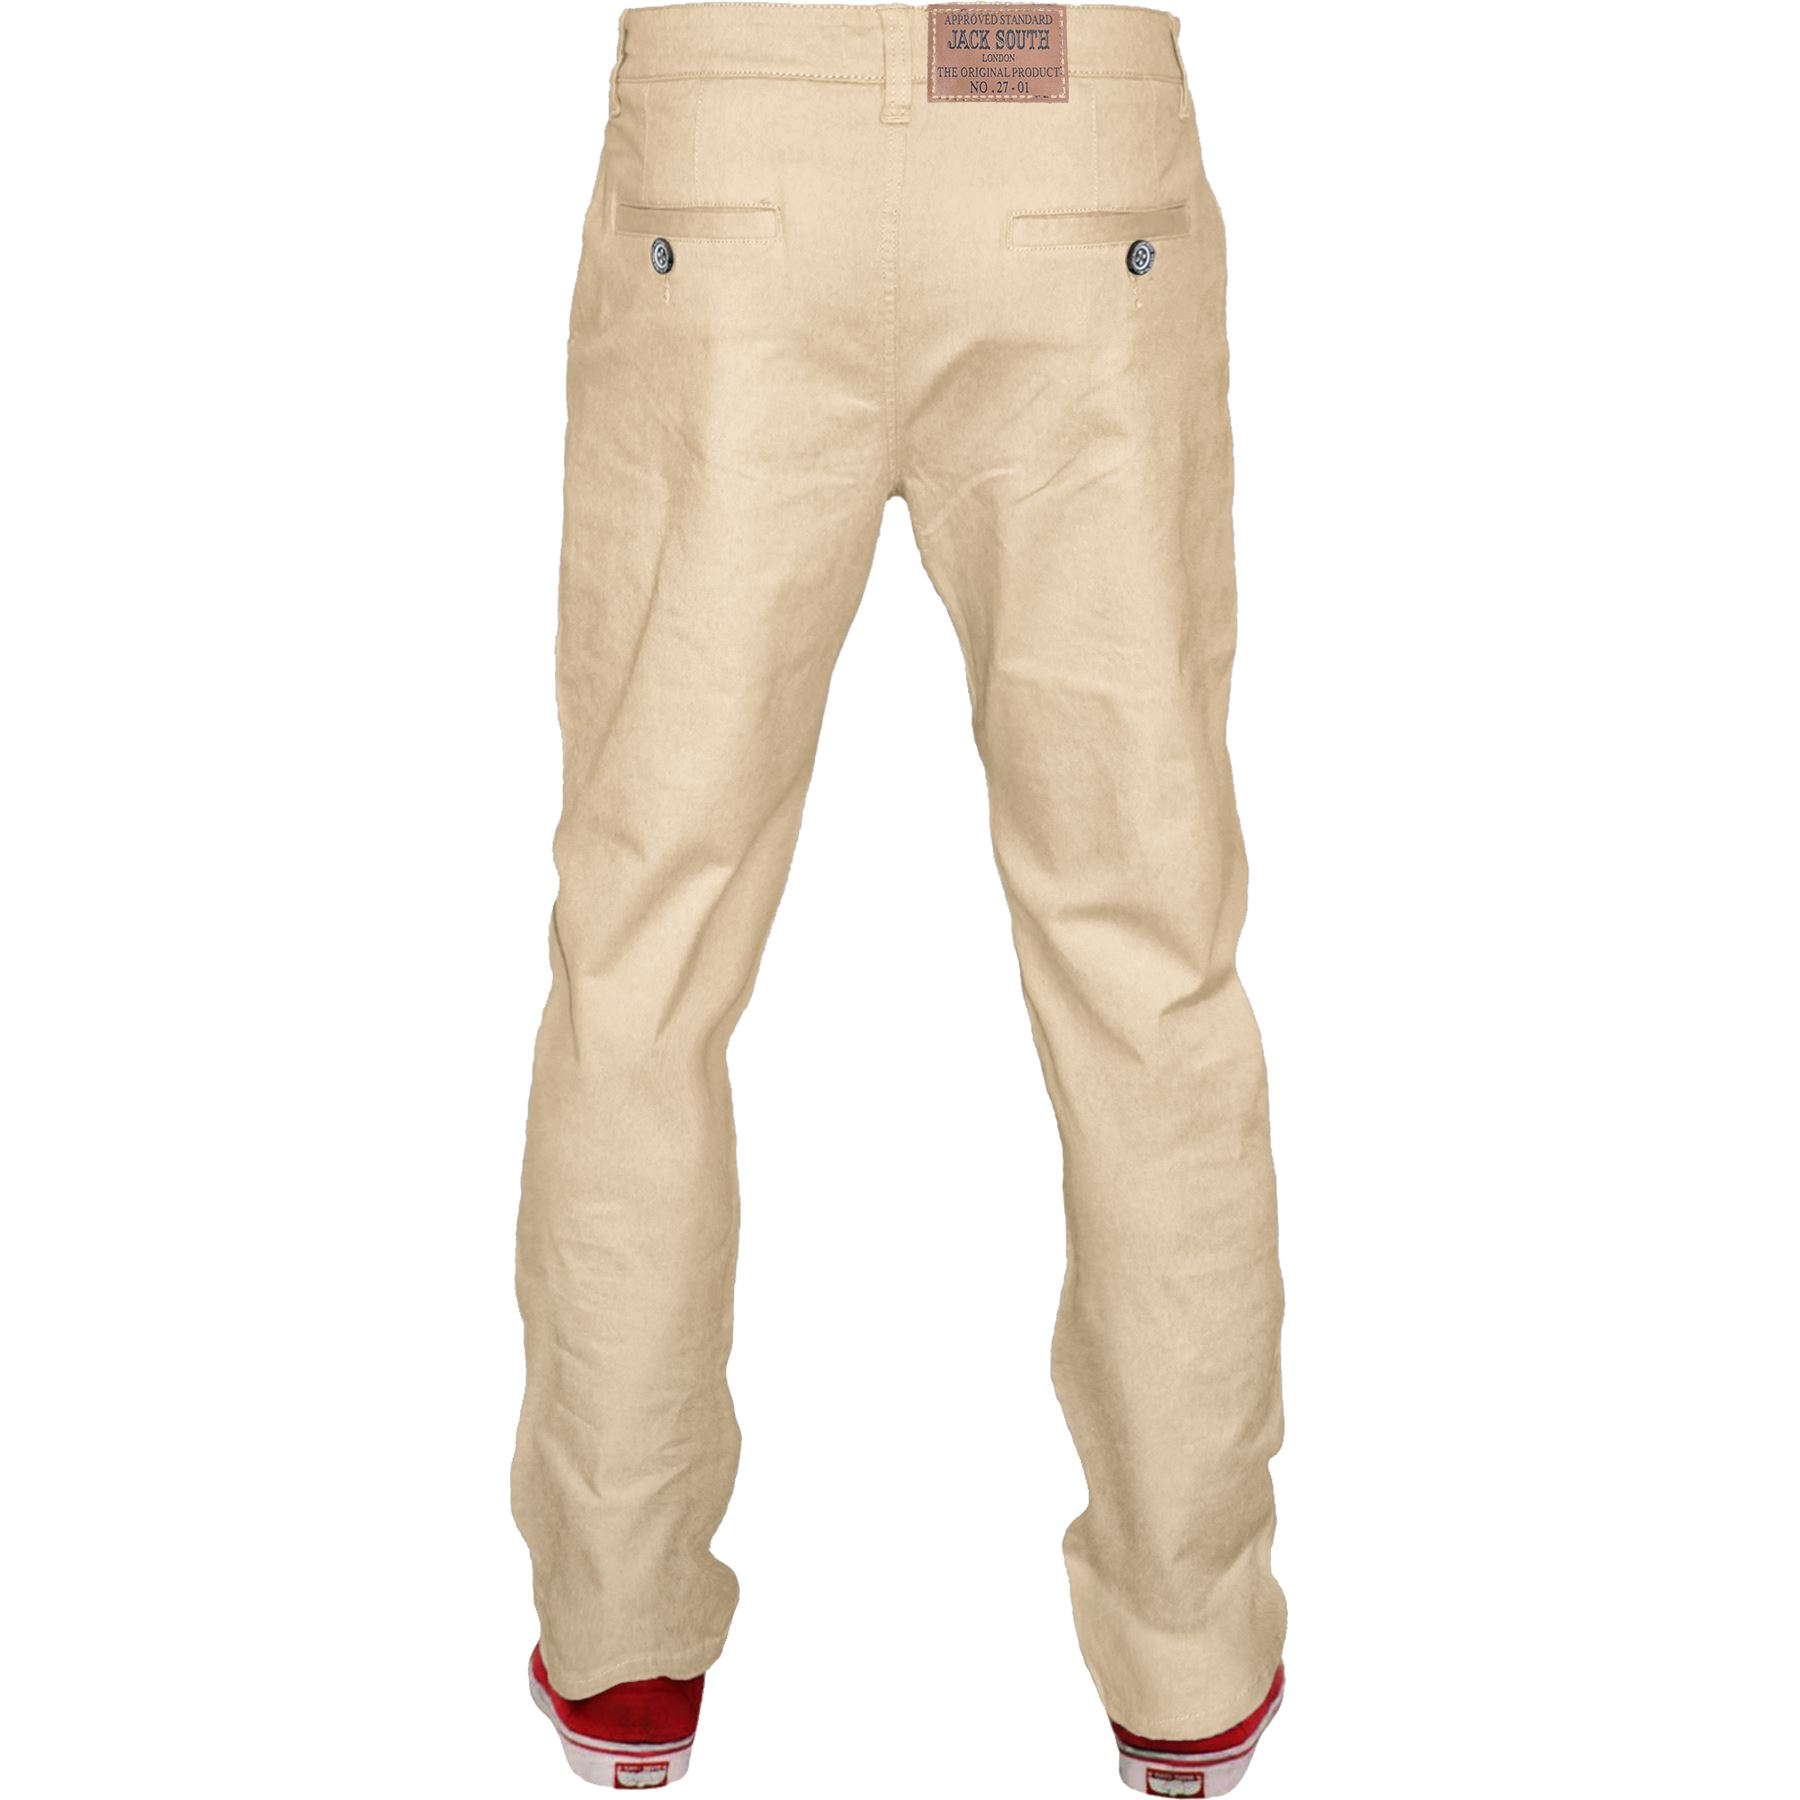 Mens-Chino-Classic-Regular-Fit-Trouser-Casual-Stretch-Spandex-Pants-Size-32-40 thumbnail 25